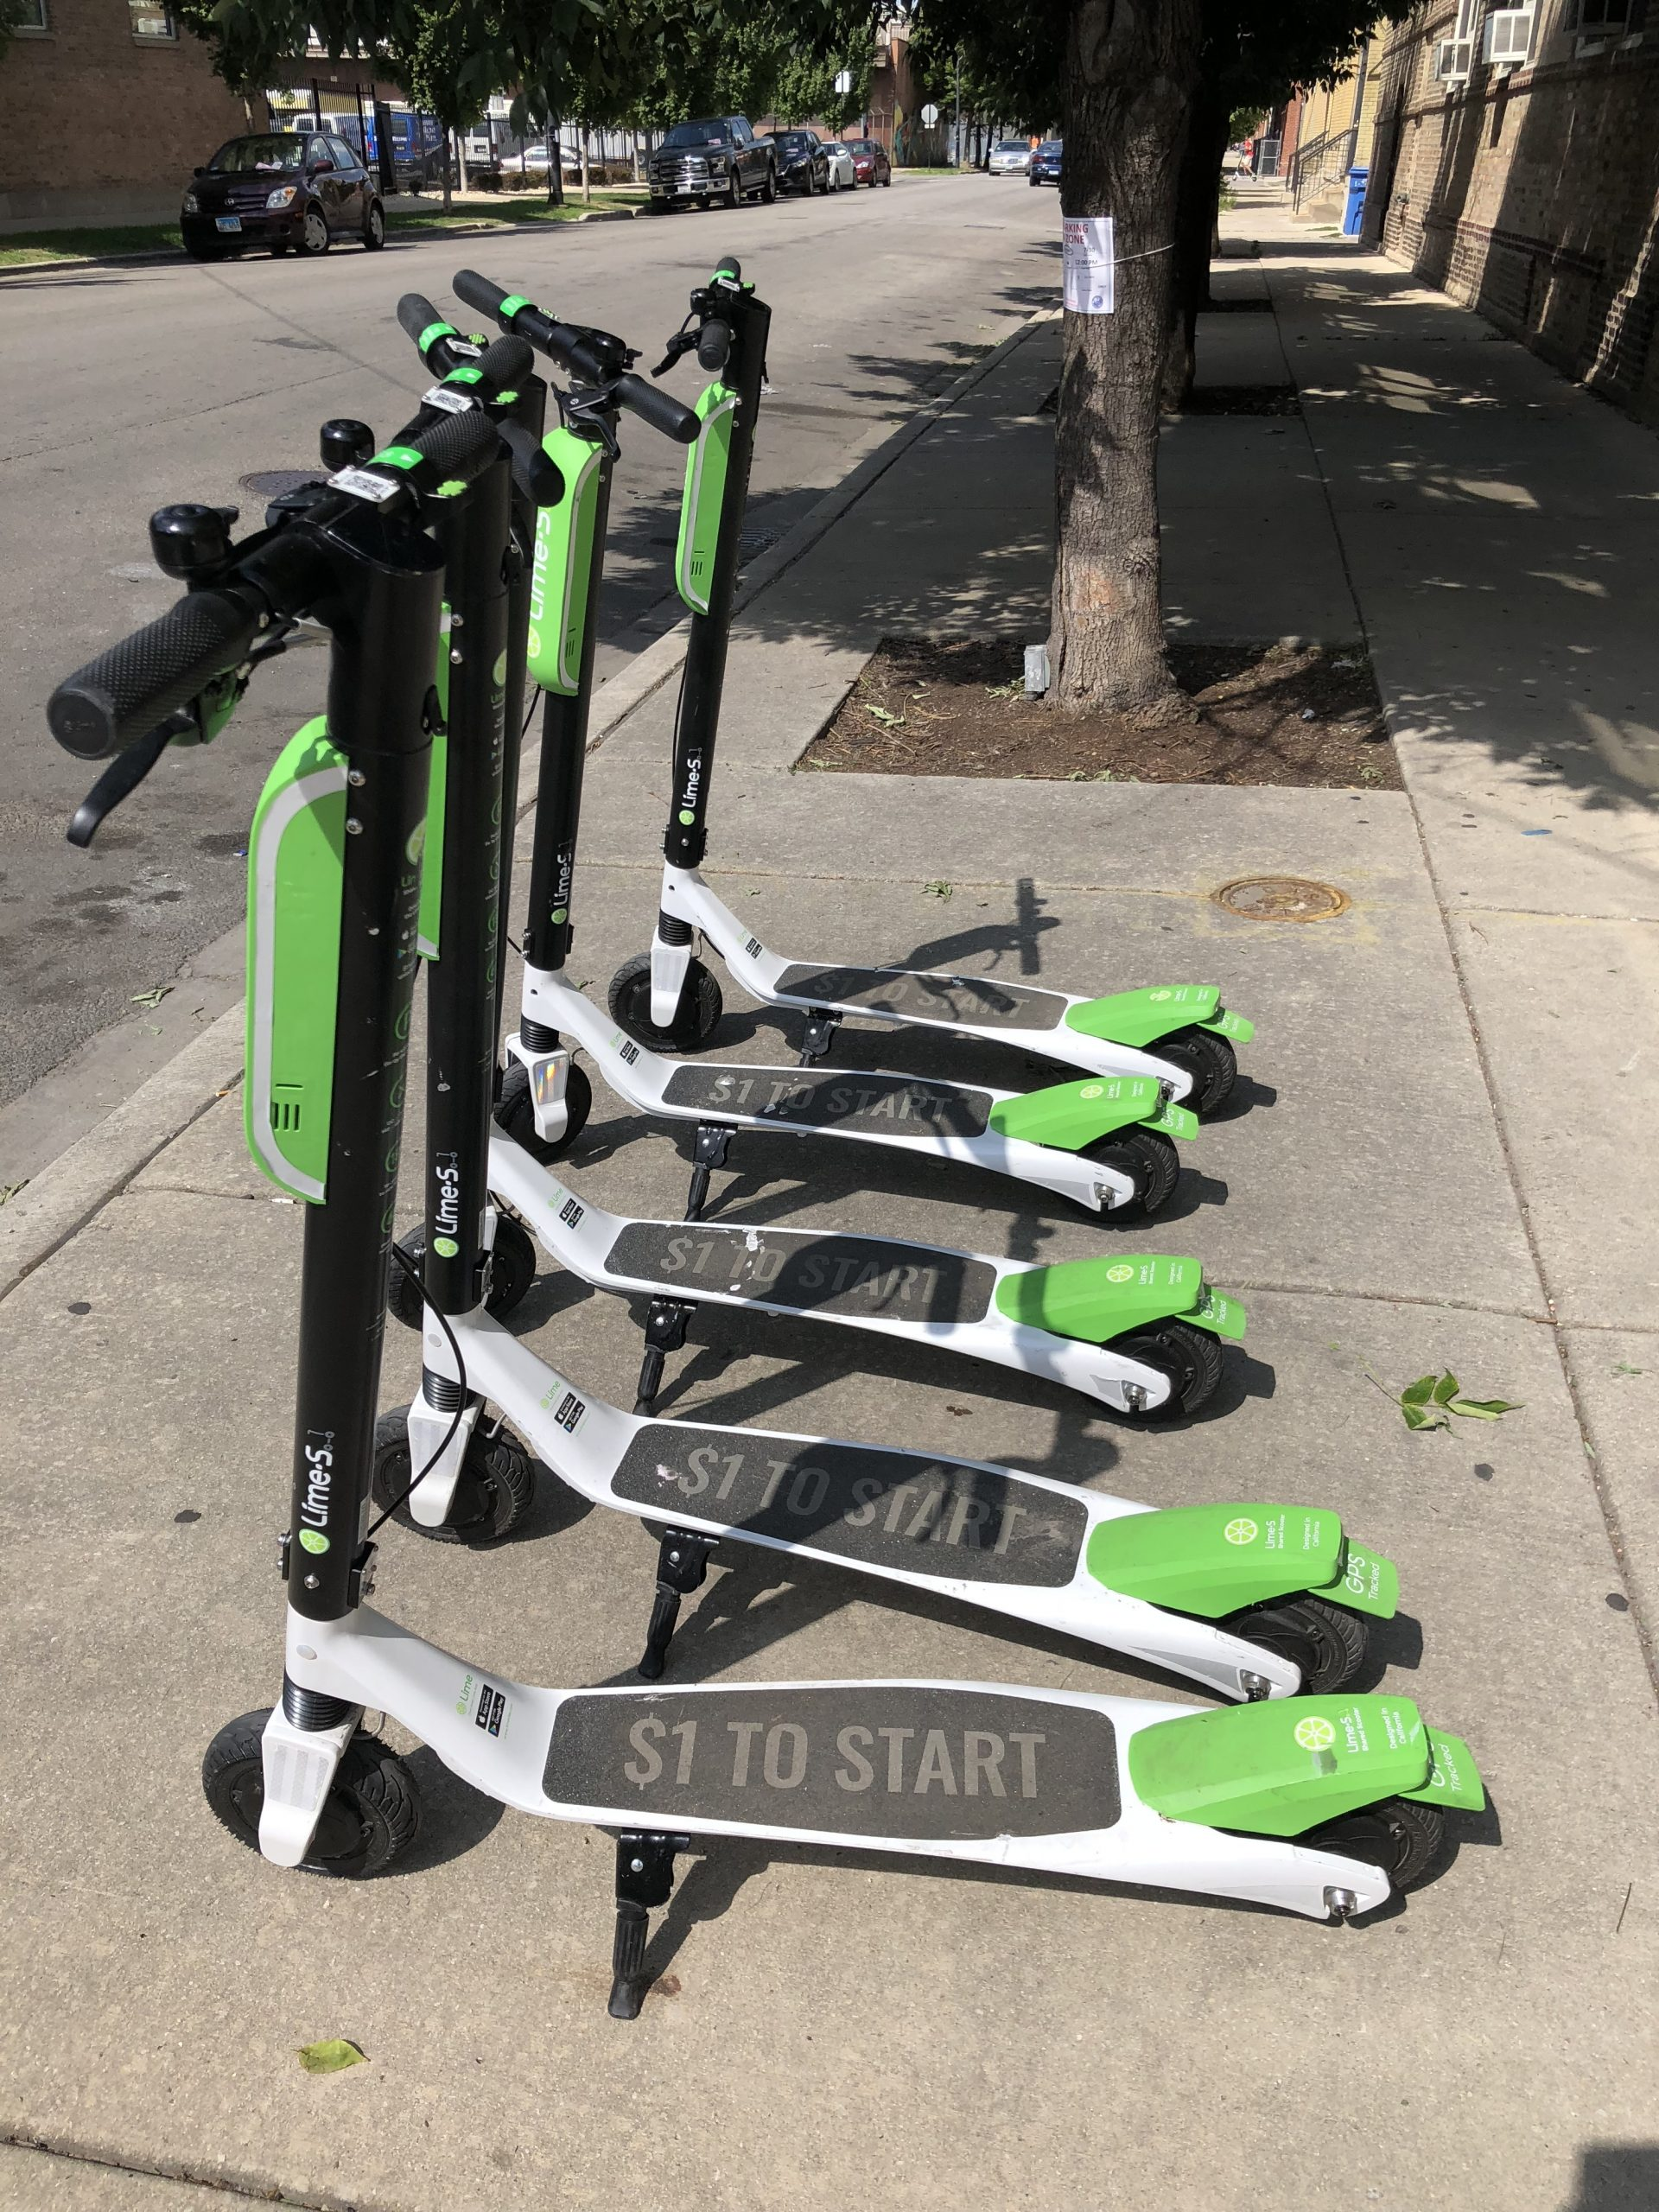 Lime demoed some of its e-scooters in Pilsen near Fiesta Del Sol over the weekend.